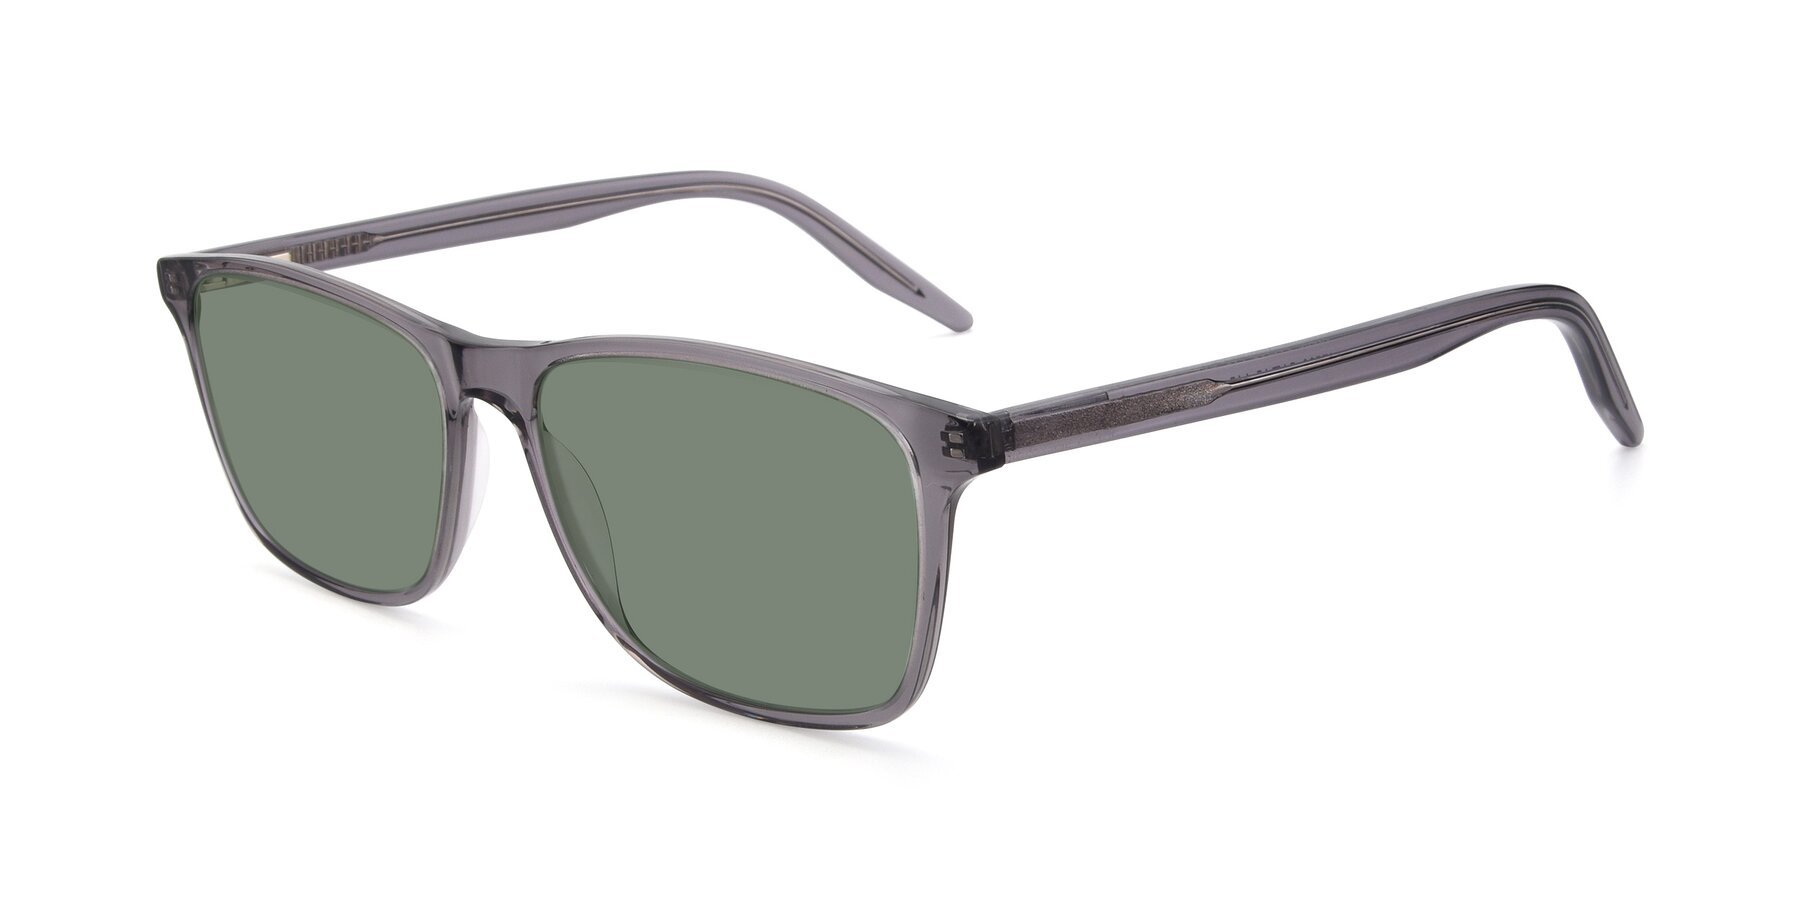 Angle of 17500 in Transparent Grey with Medium Green Tinted Lenses